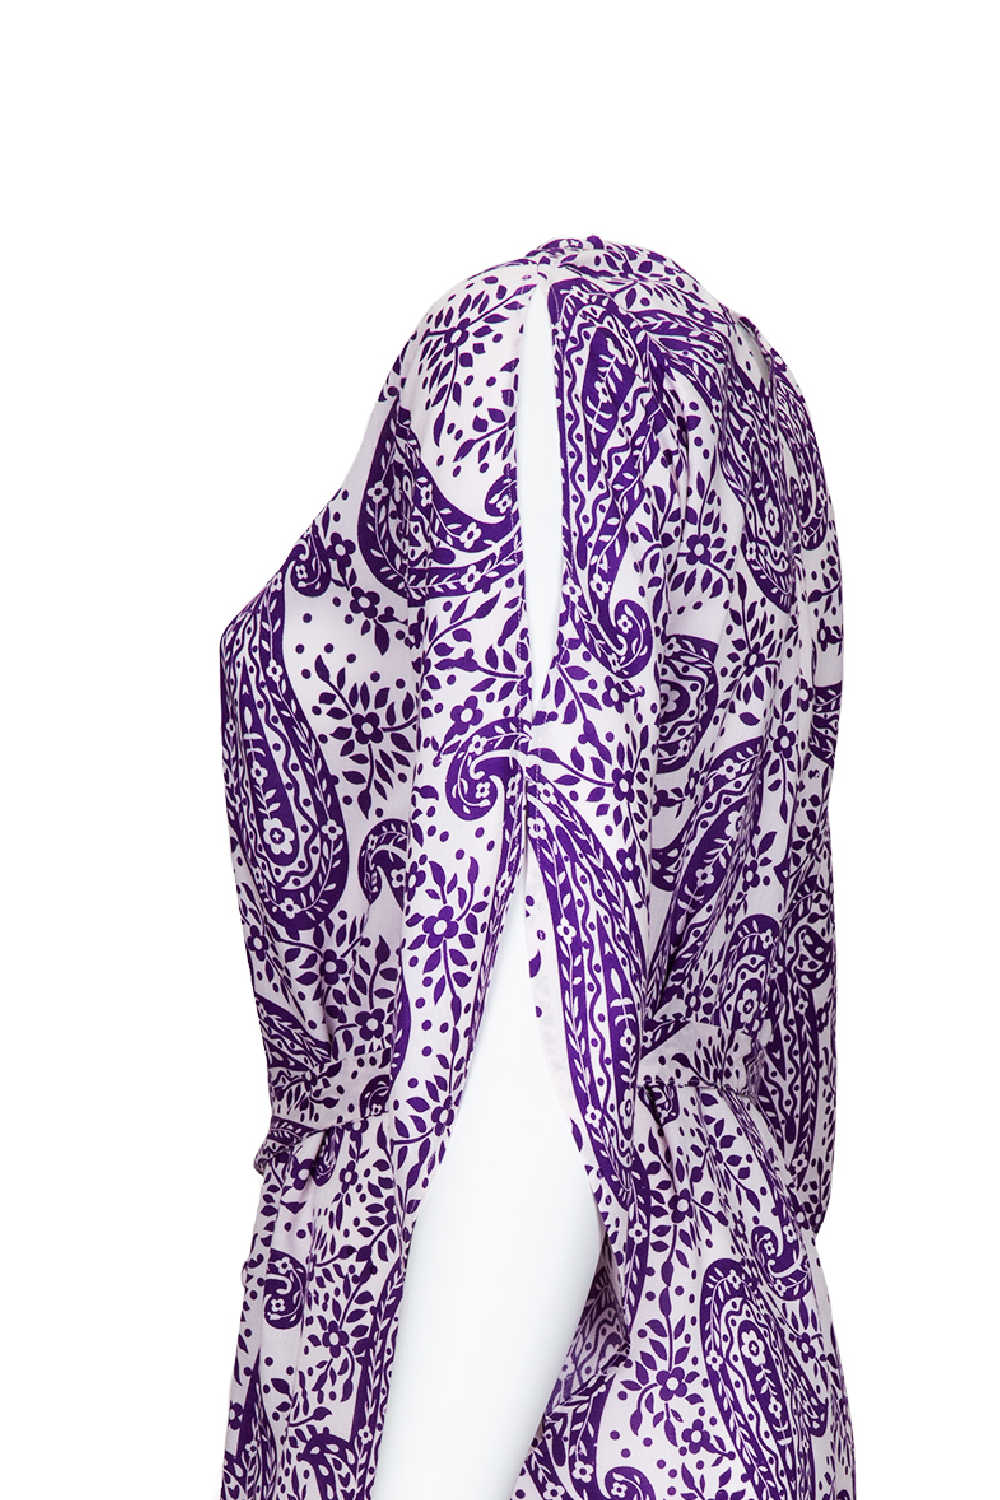 summer-dress-white-purple-paisley-print